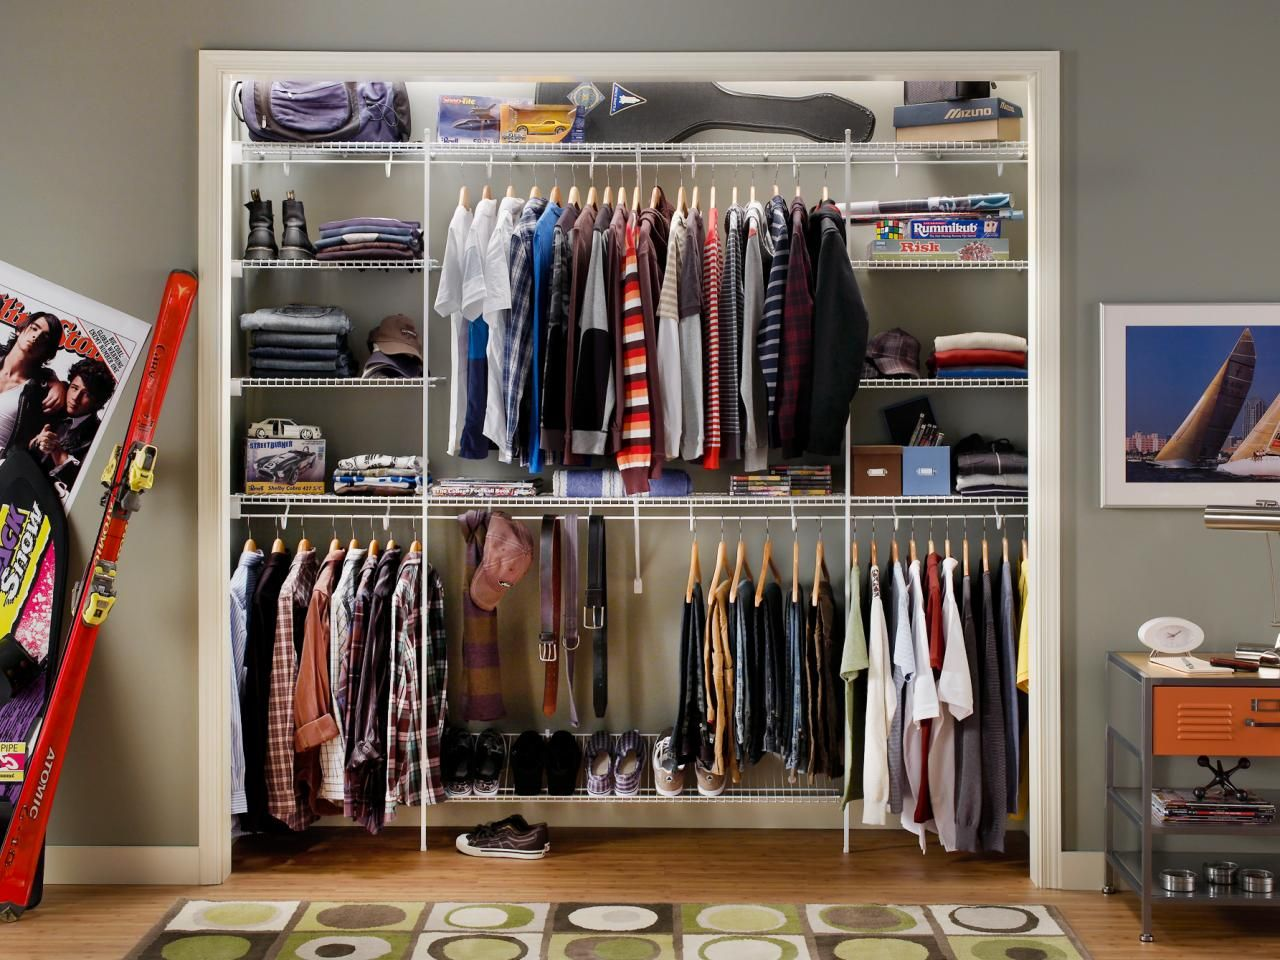 Small Closet Organization Ideas Pictures Options Tips Closet Remodel Closet Designs Wire Closet Shelving